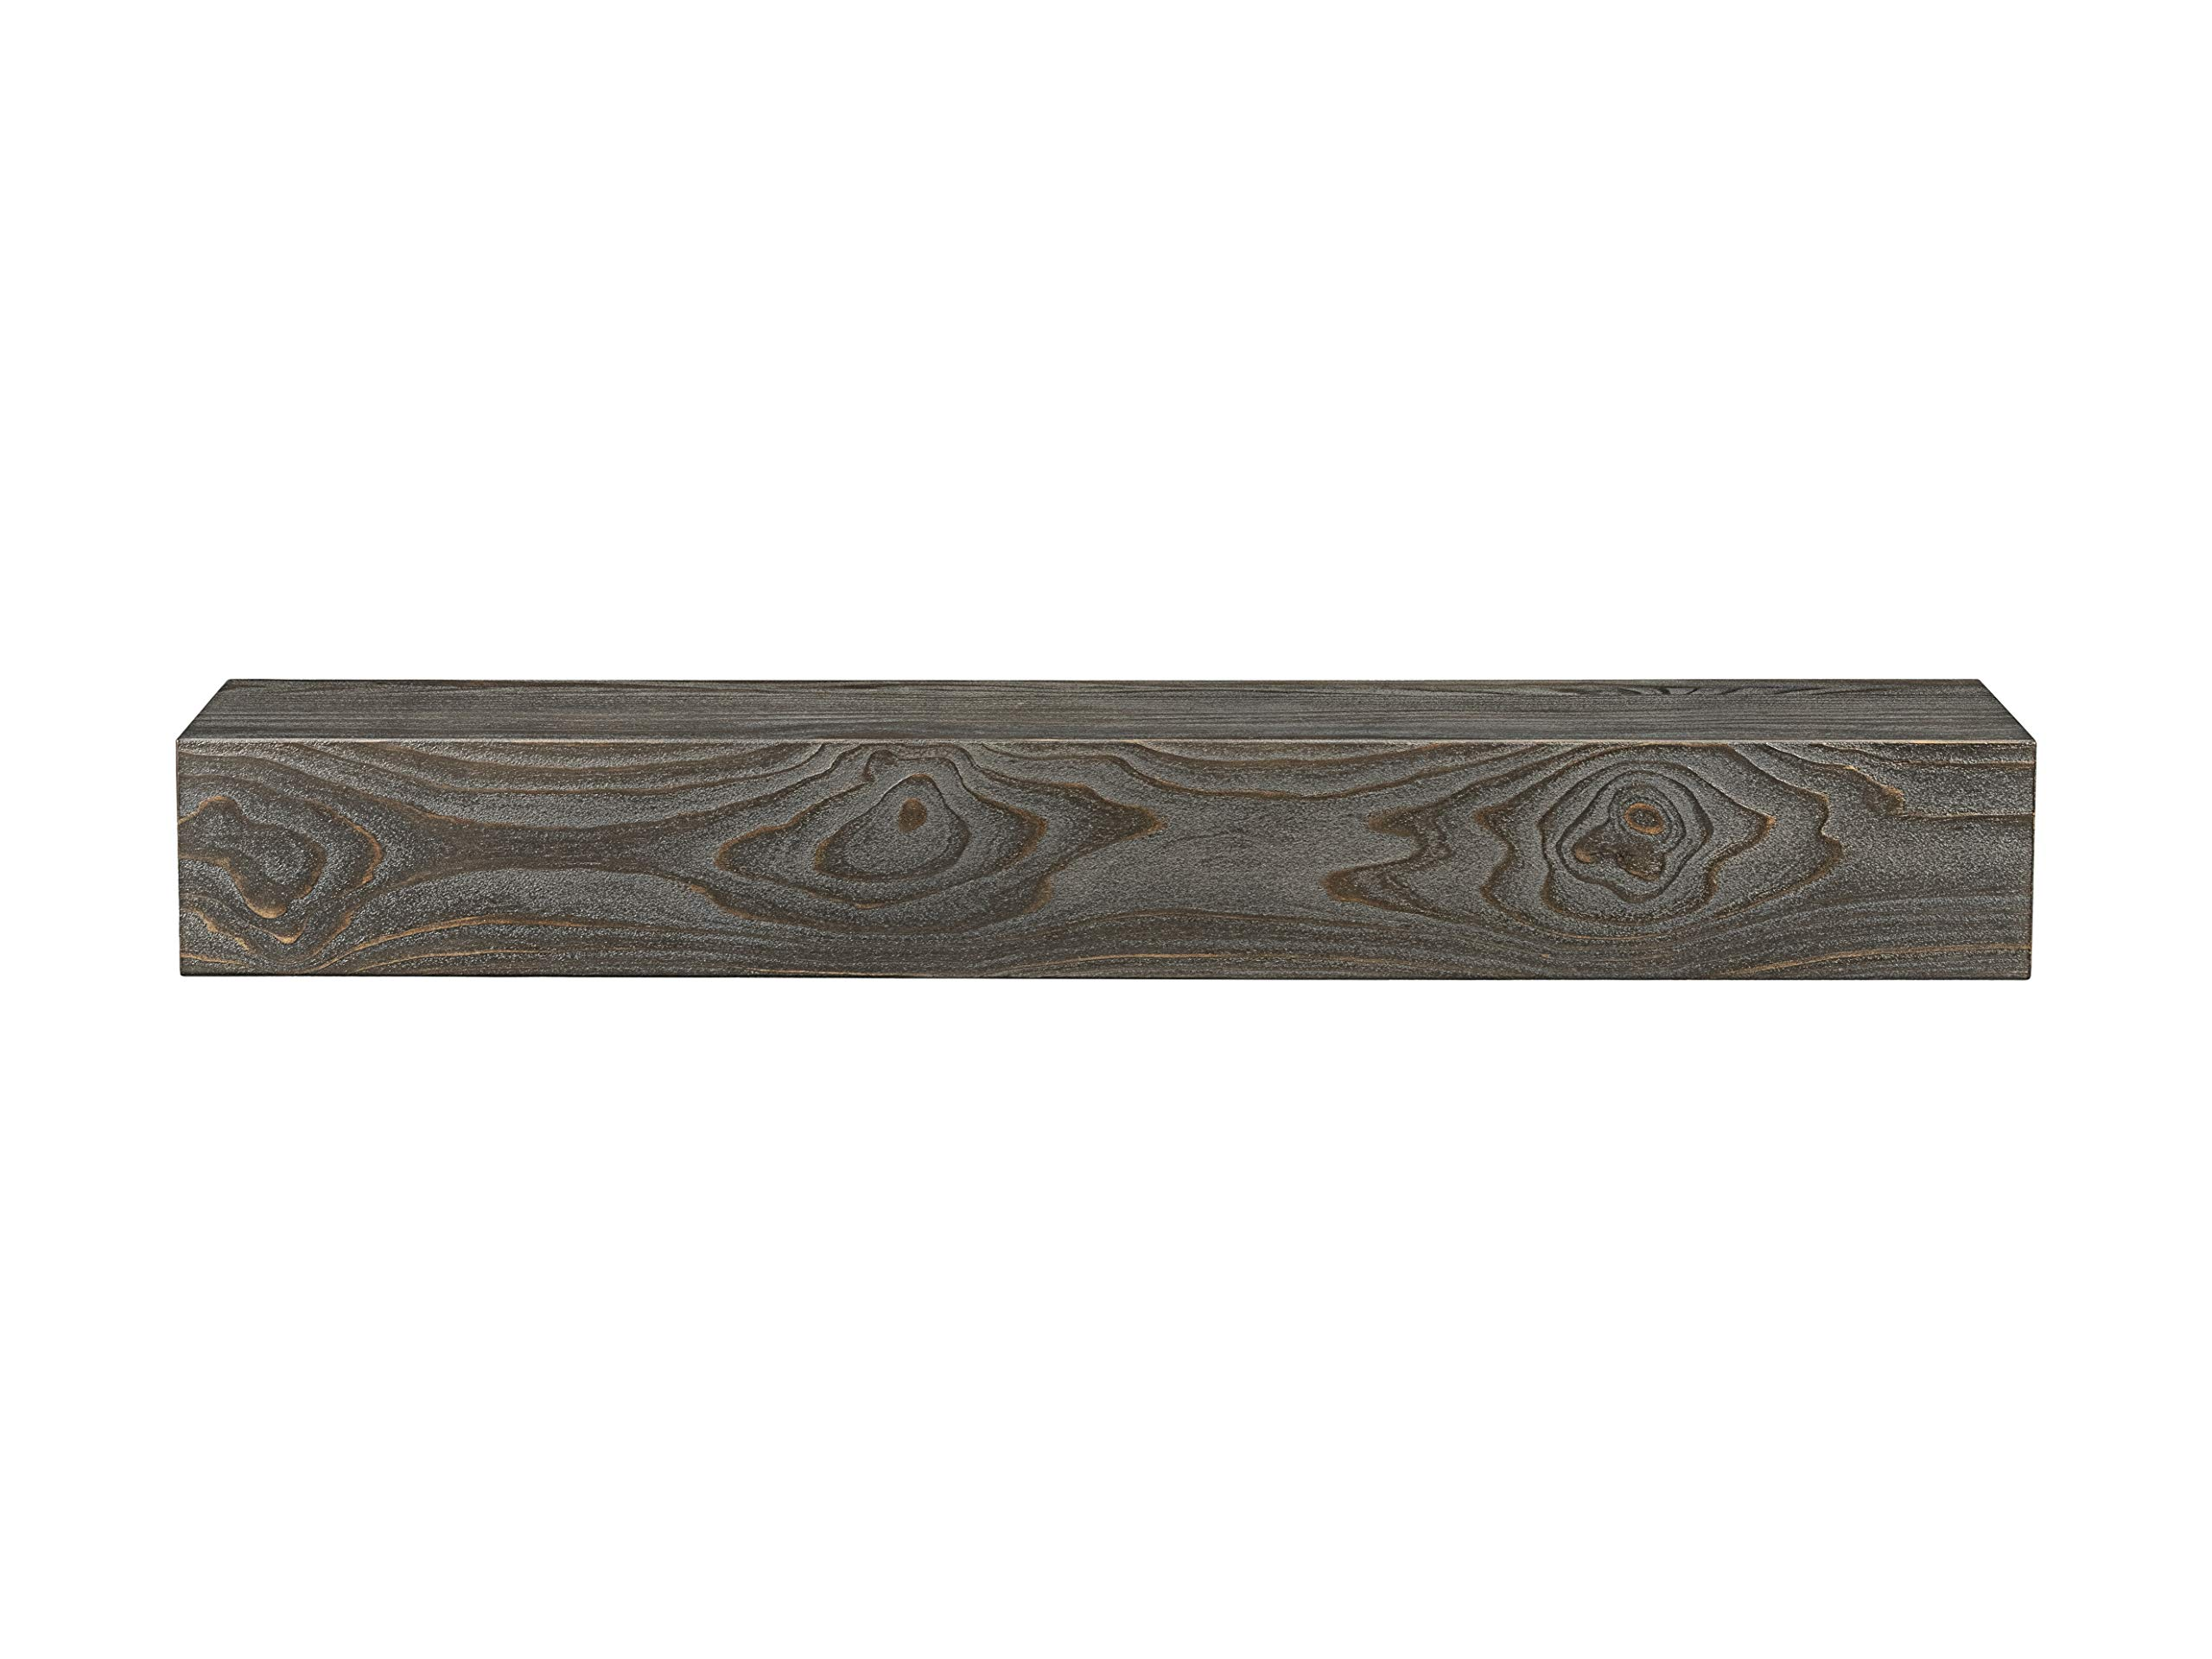 Pearl Mantels The Hastings Mantel Shelf, 72'', Little River Finish by Pearl Mantels